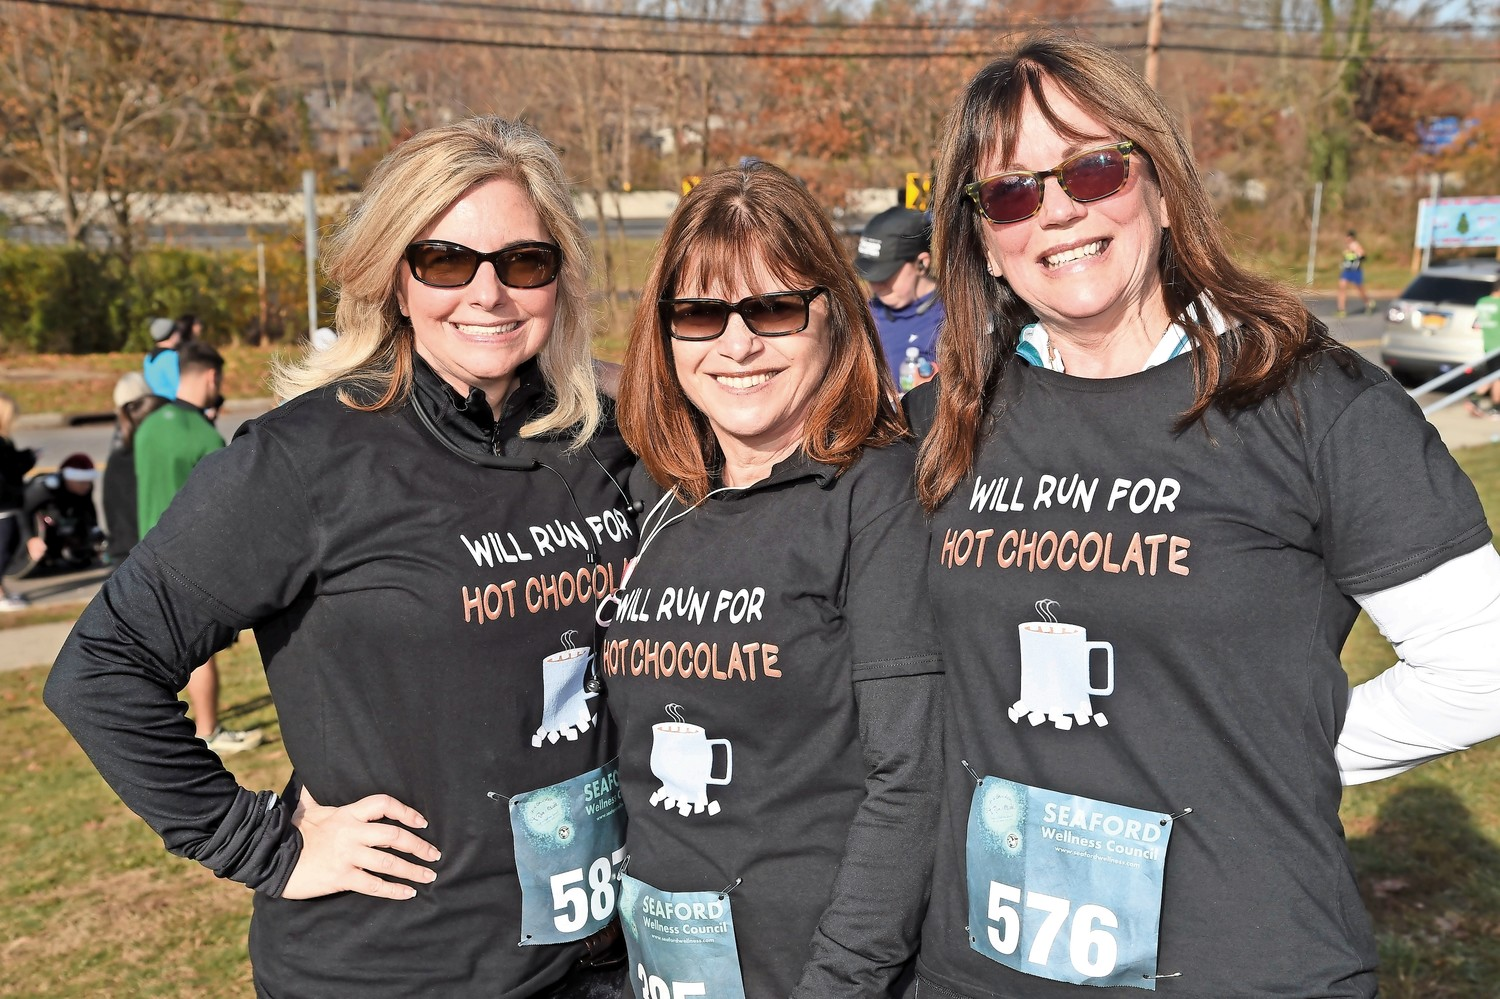 From left, Robin LaBarbera, of Bellmore, Carole Polney, of Lindenhurst, and Casey Phelan, of Wantagh, raced for hot chocolate.